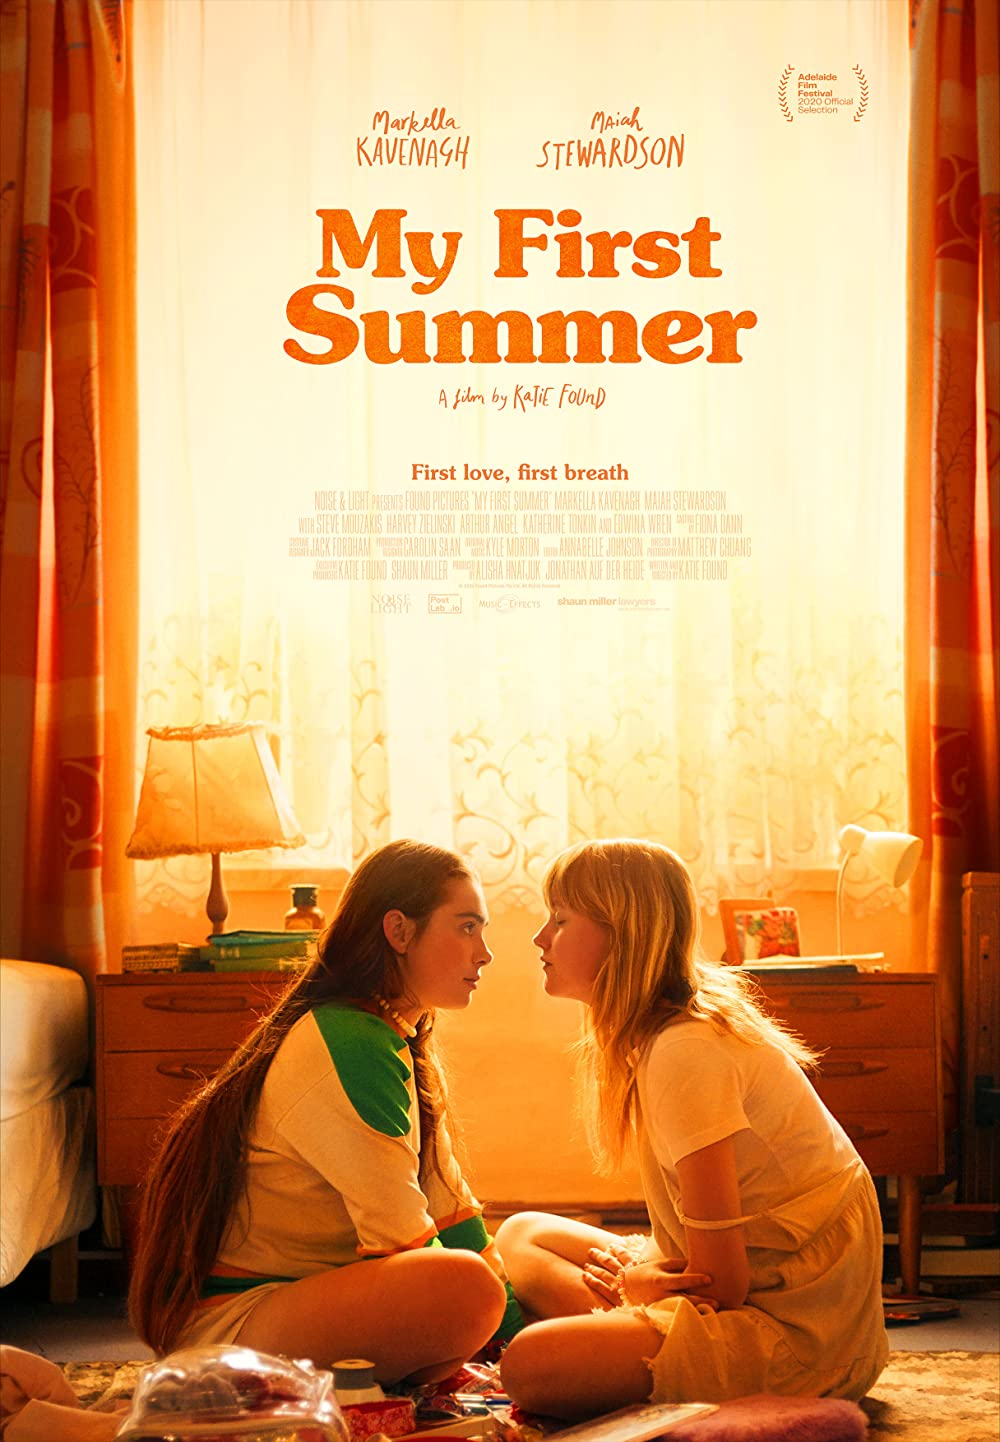 My First Summer (2020) Hindi (Voice Over) Dubbed+ English [Dual Audio] WebRip 720p [1XBET]